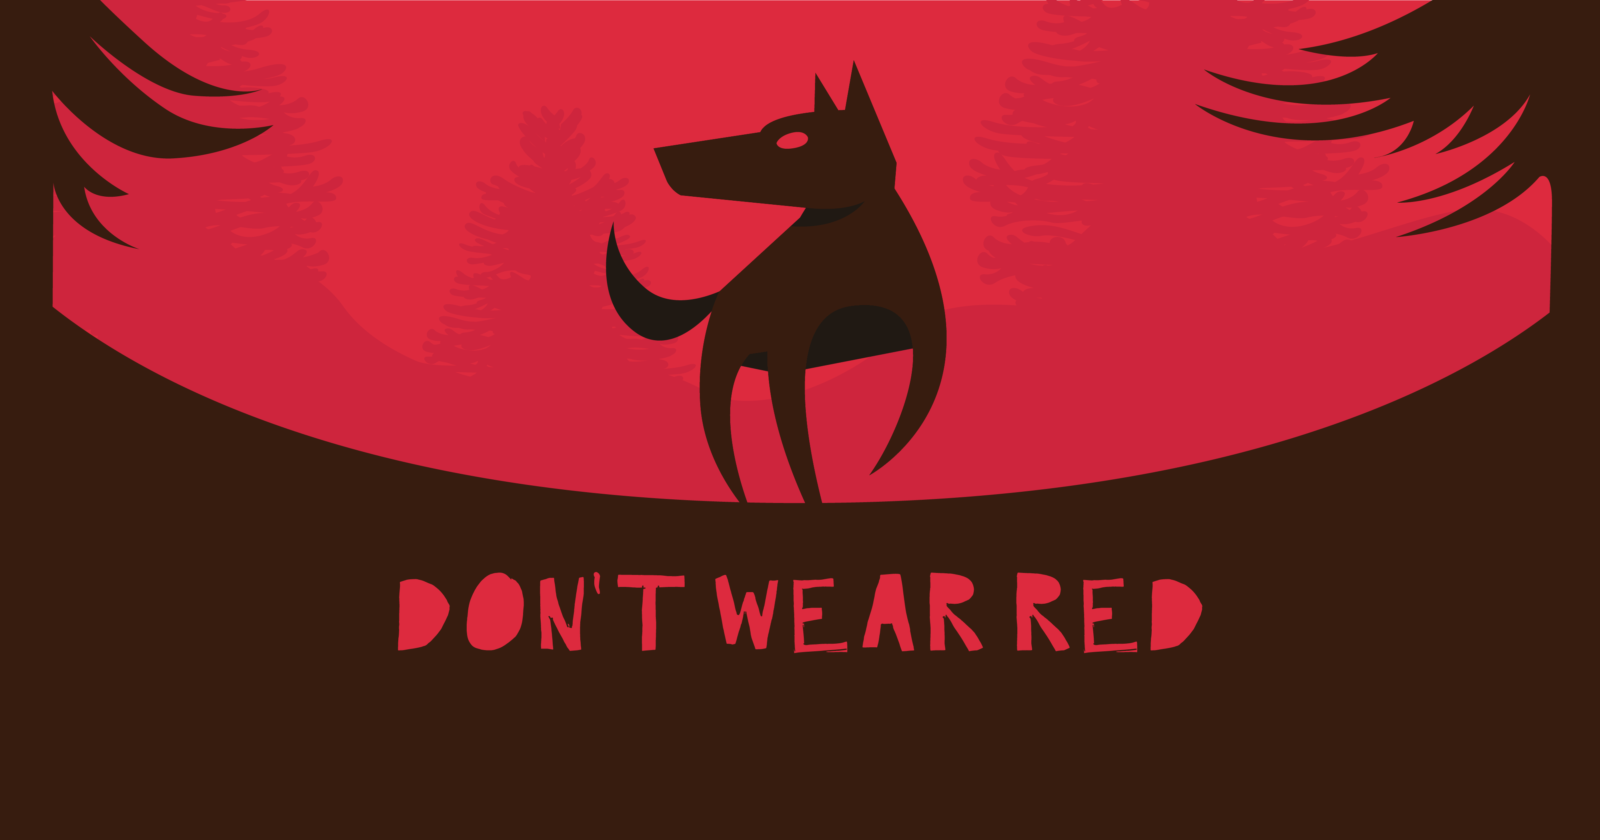 Don't Wear Red by Stacey Lehane